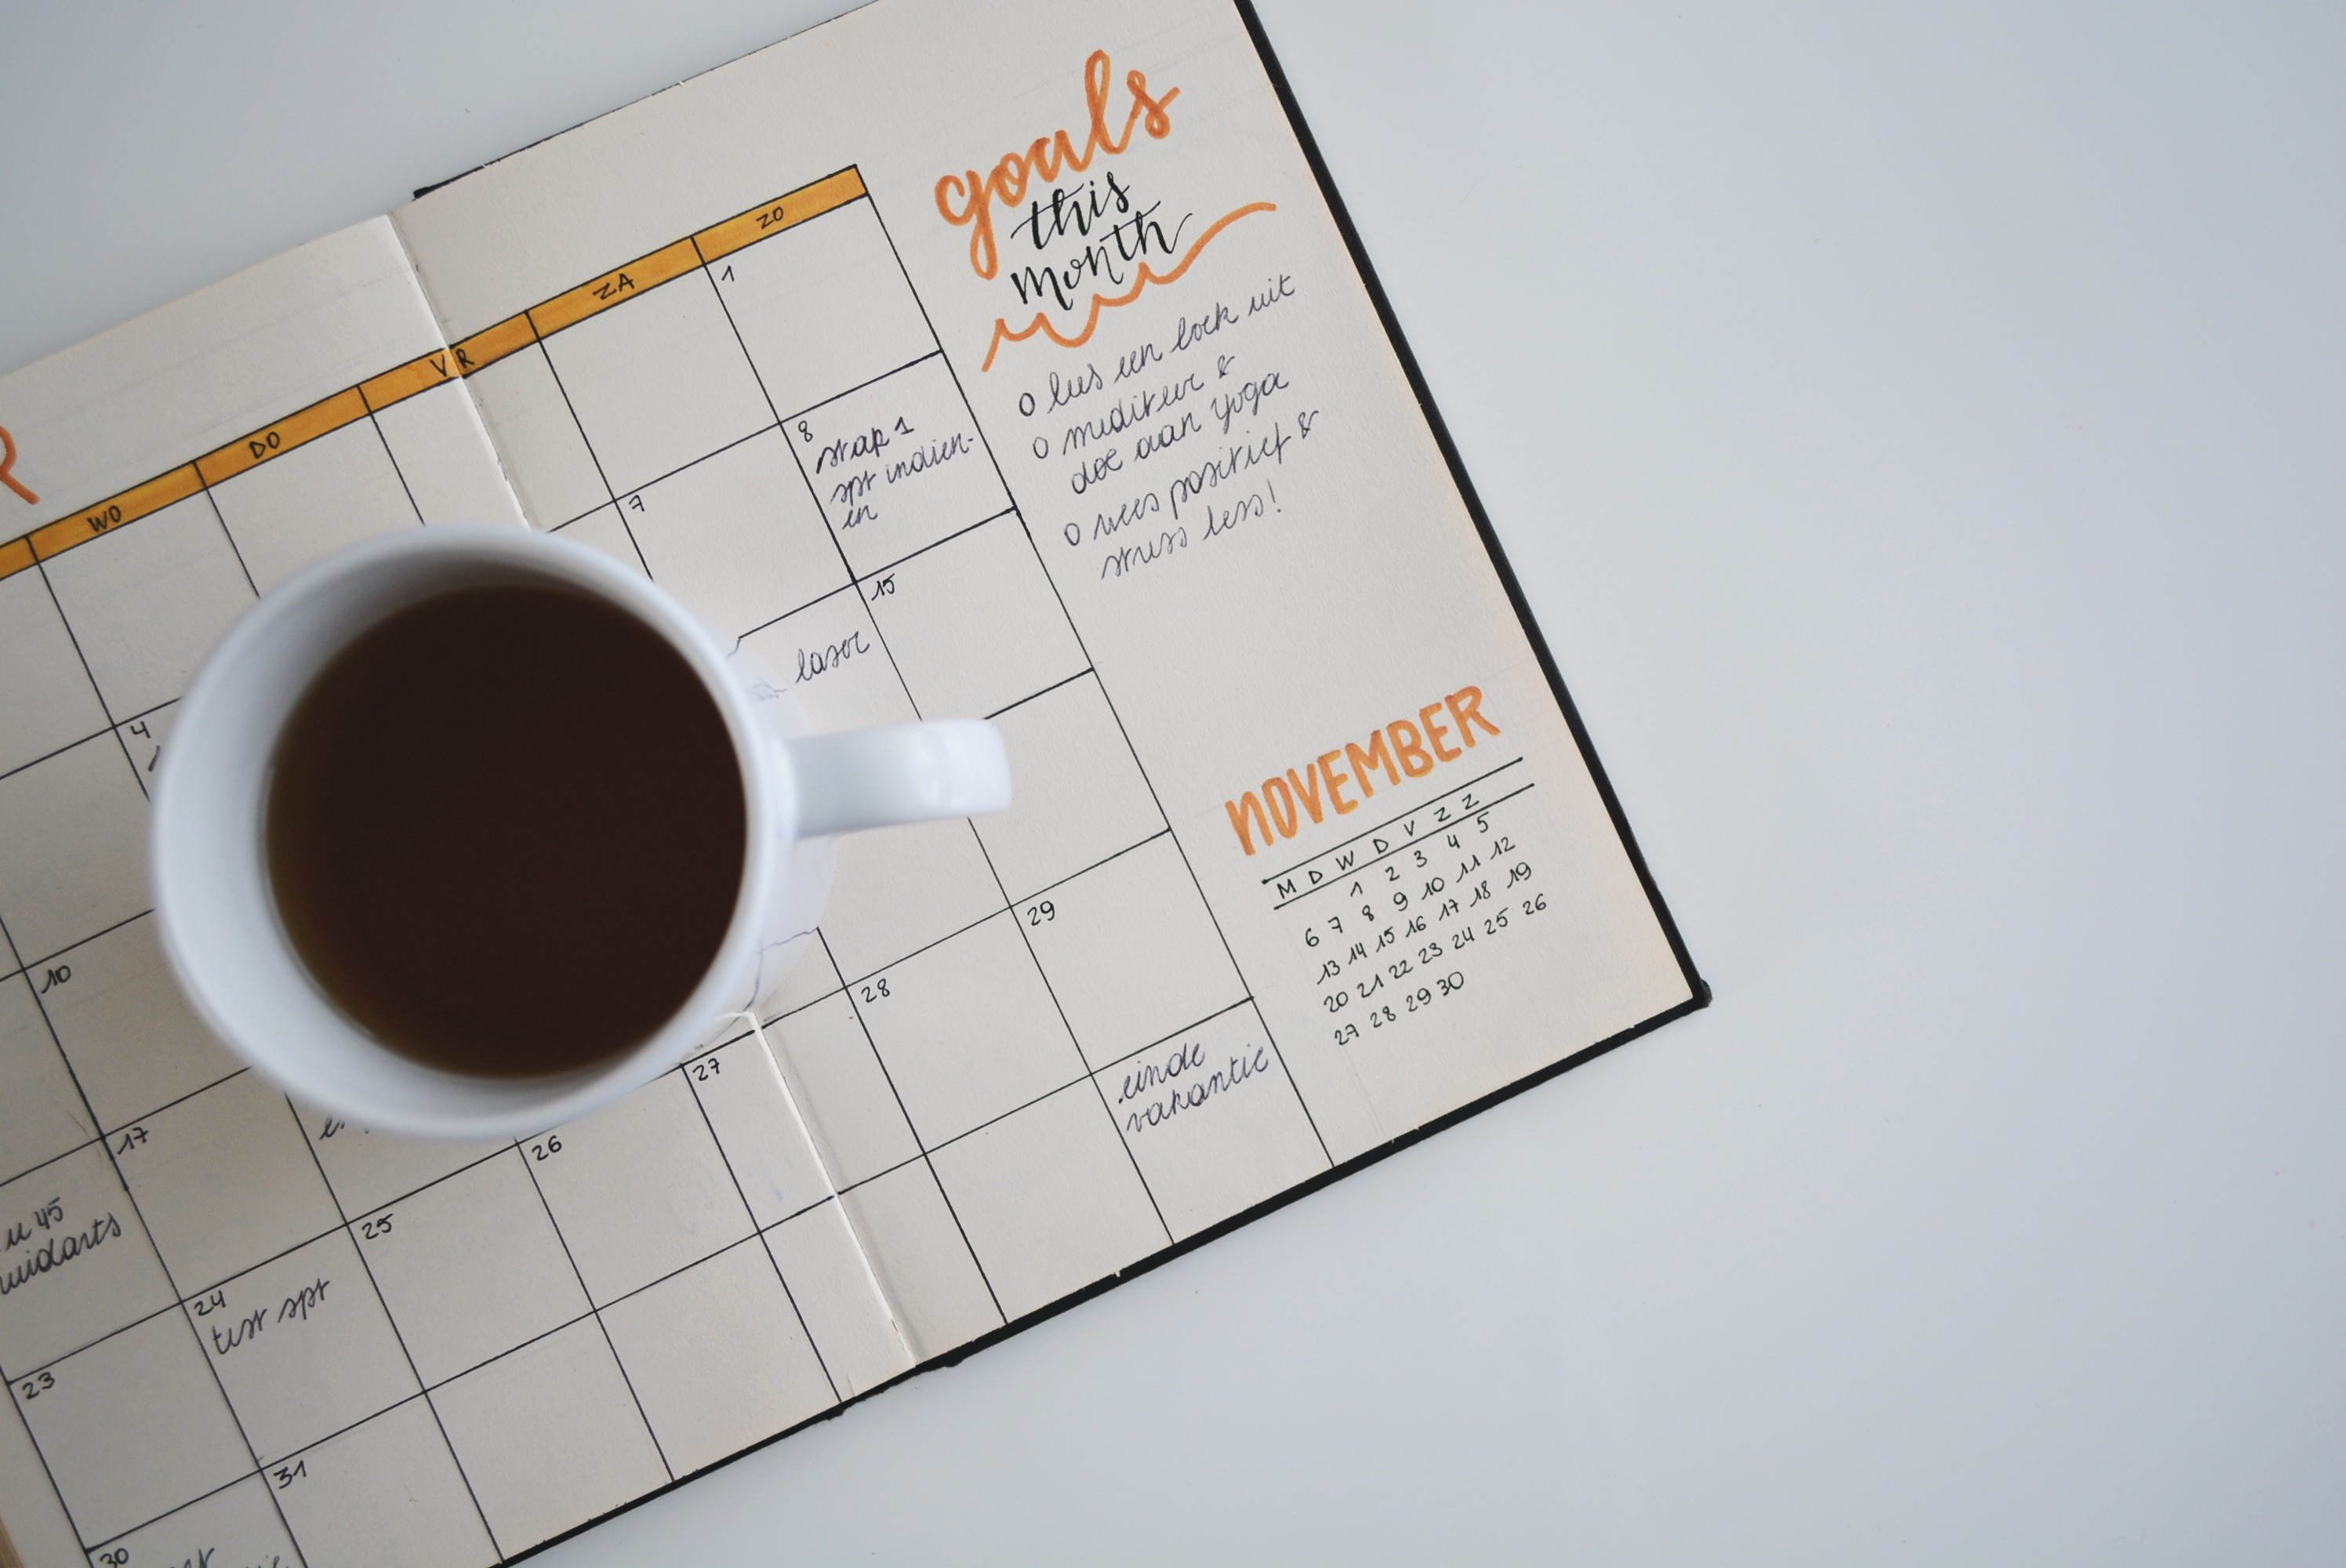 A cup of coffee sitting on a daily planner notebook